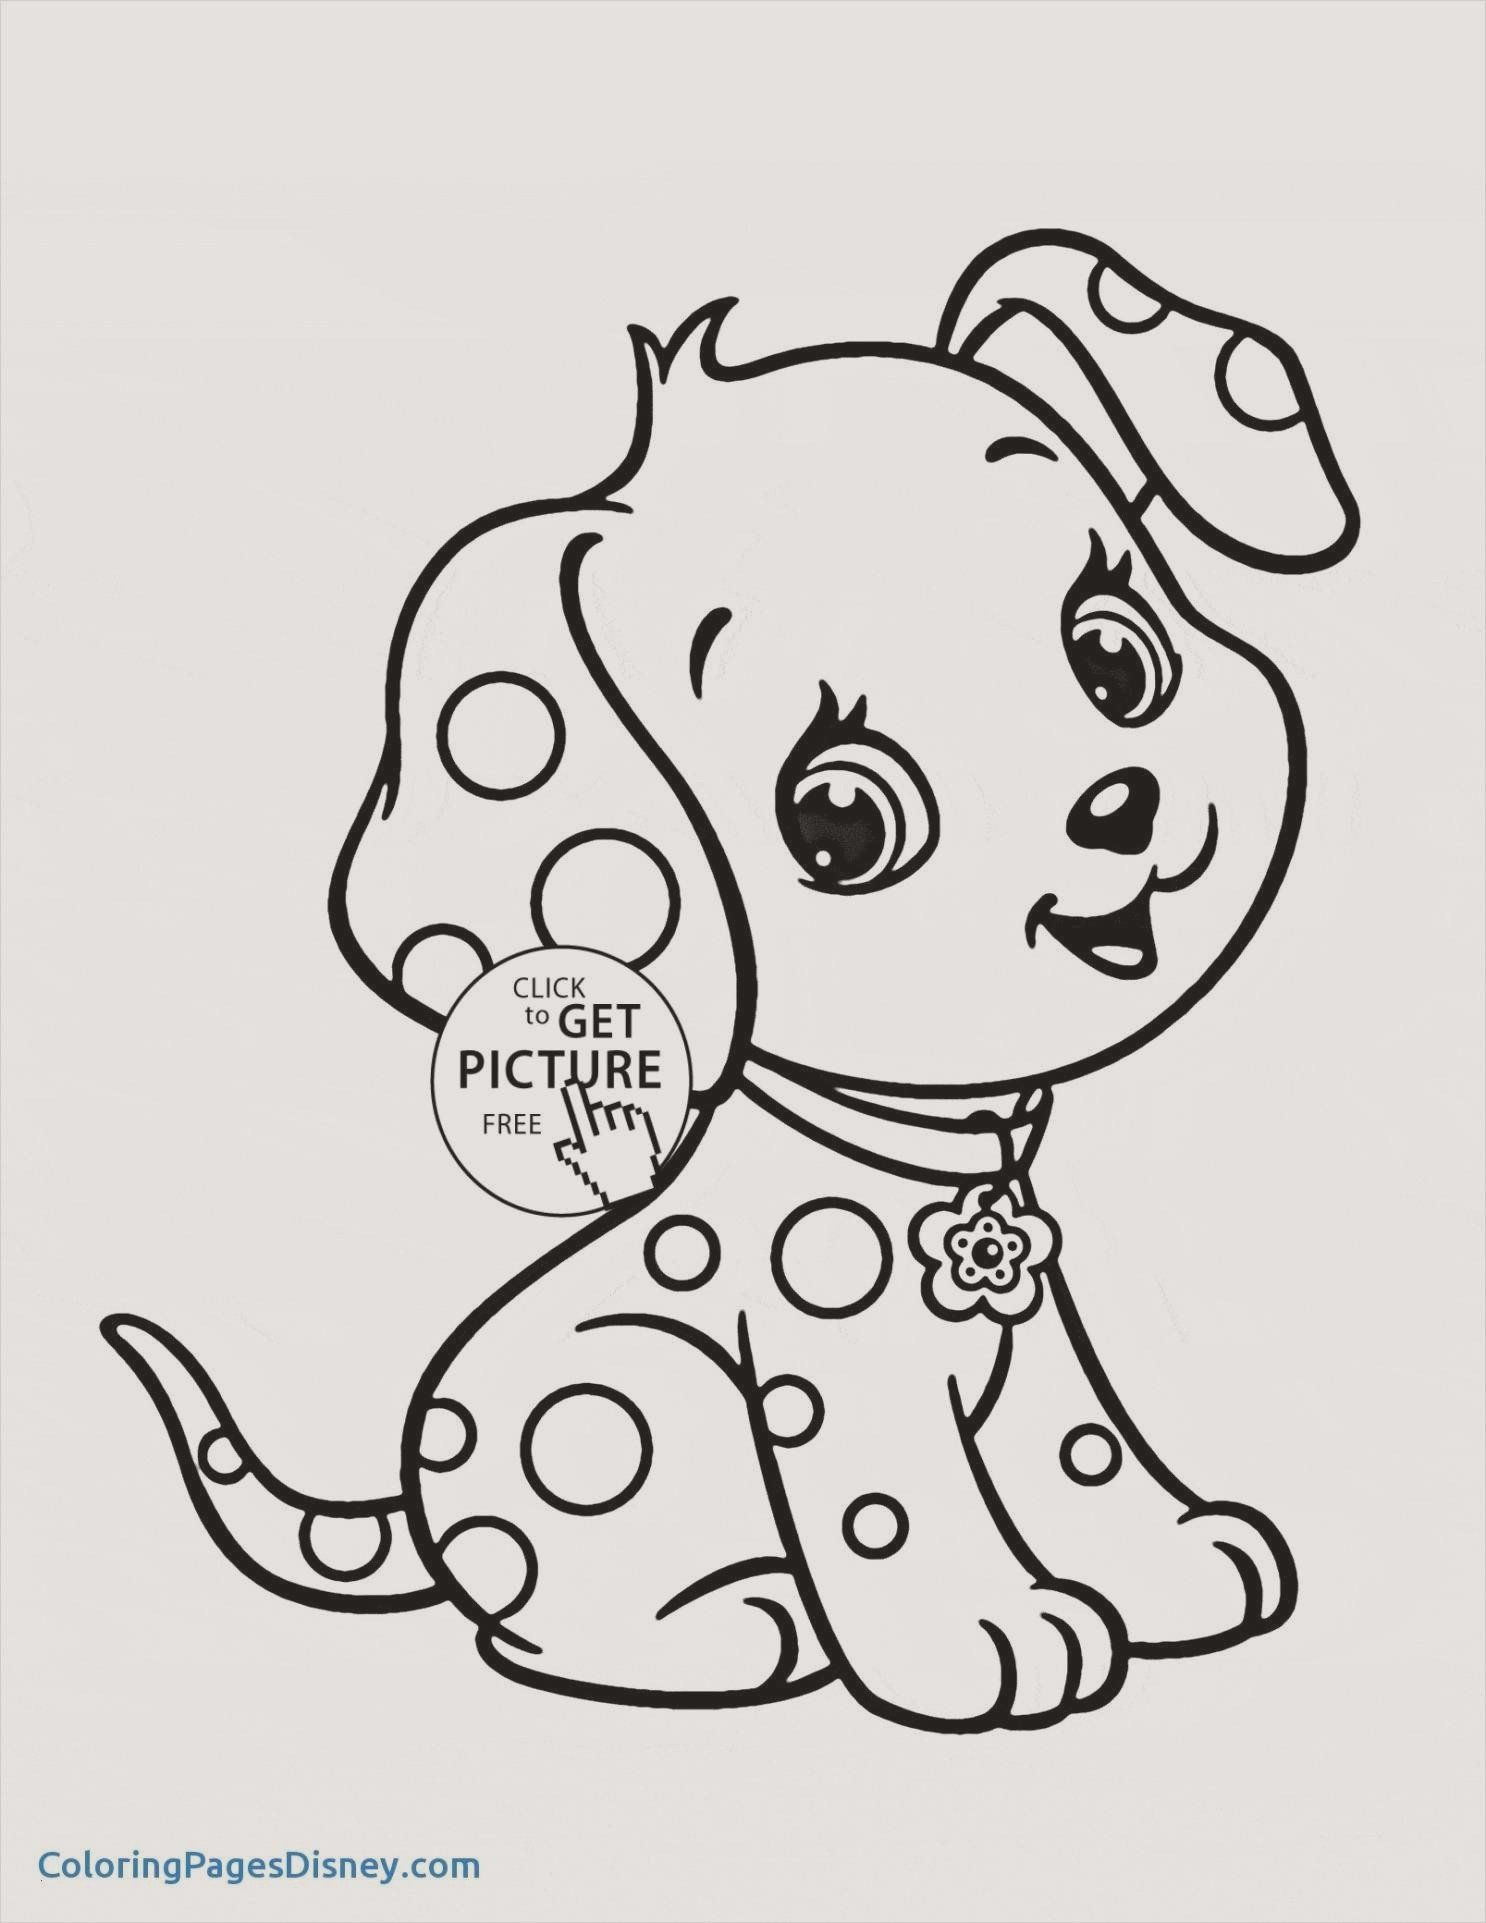 Doctor Who Coloring Book Lovely 79 Doctor Coloring Pages Free Printable In 2020 Unicorn Coloring Pages Puppy Coloring Pages Hello Kitty Colouring Pages